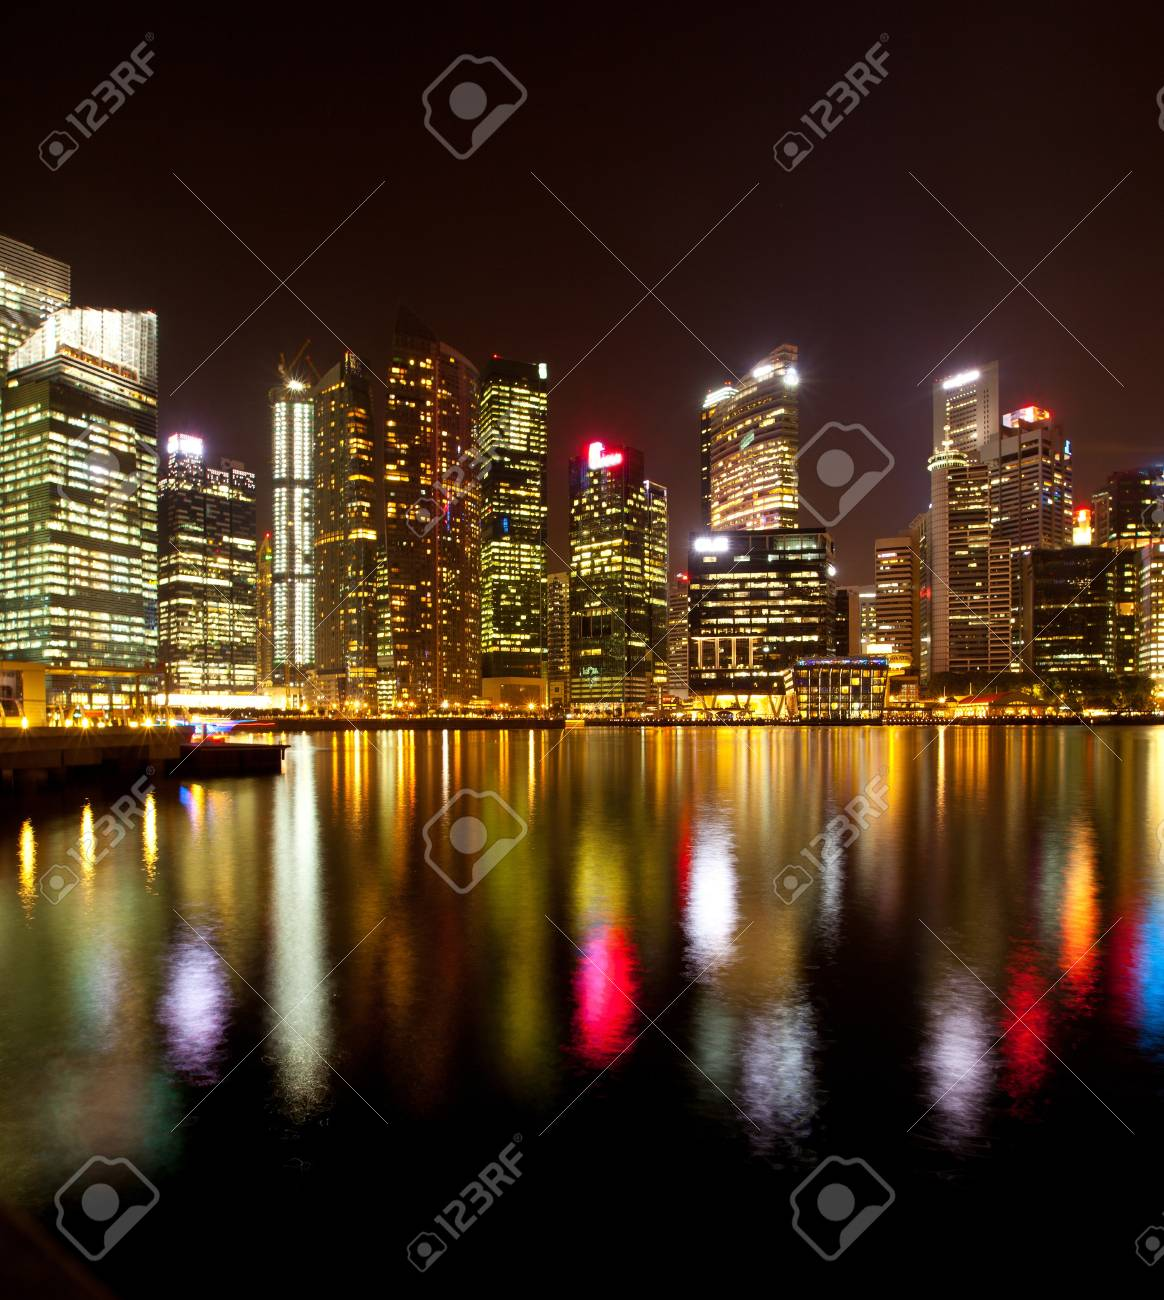 A view of Singapore business district, in the night time, with water reflections. Stock Photo - 14553685